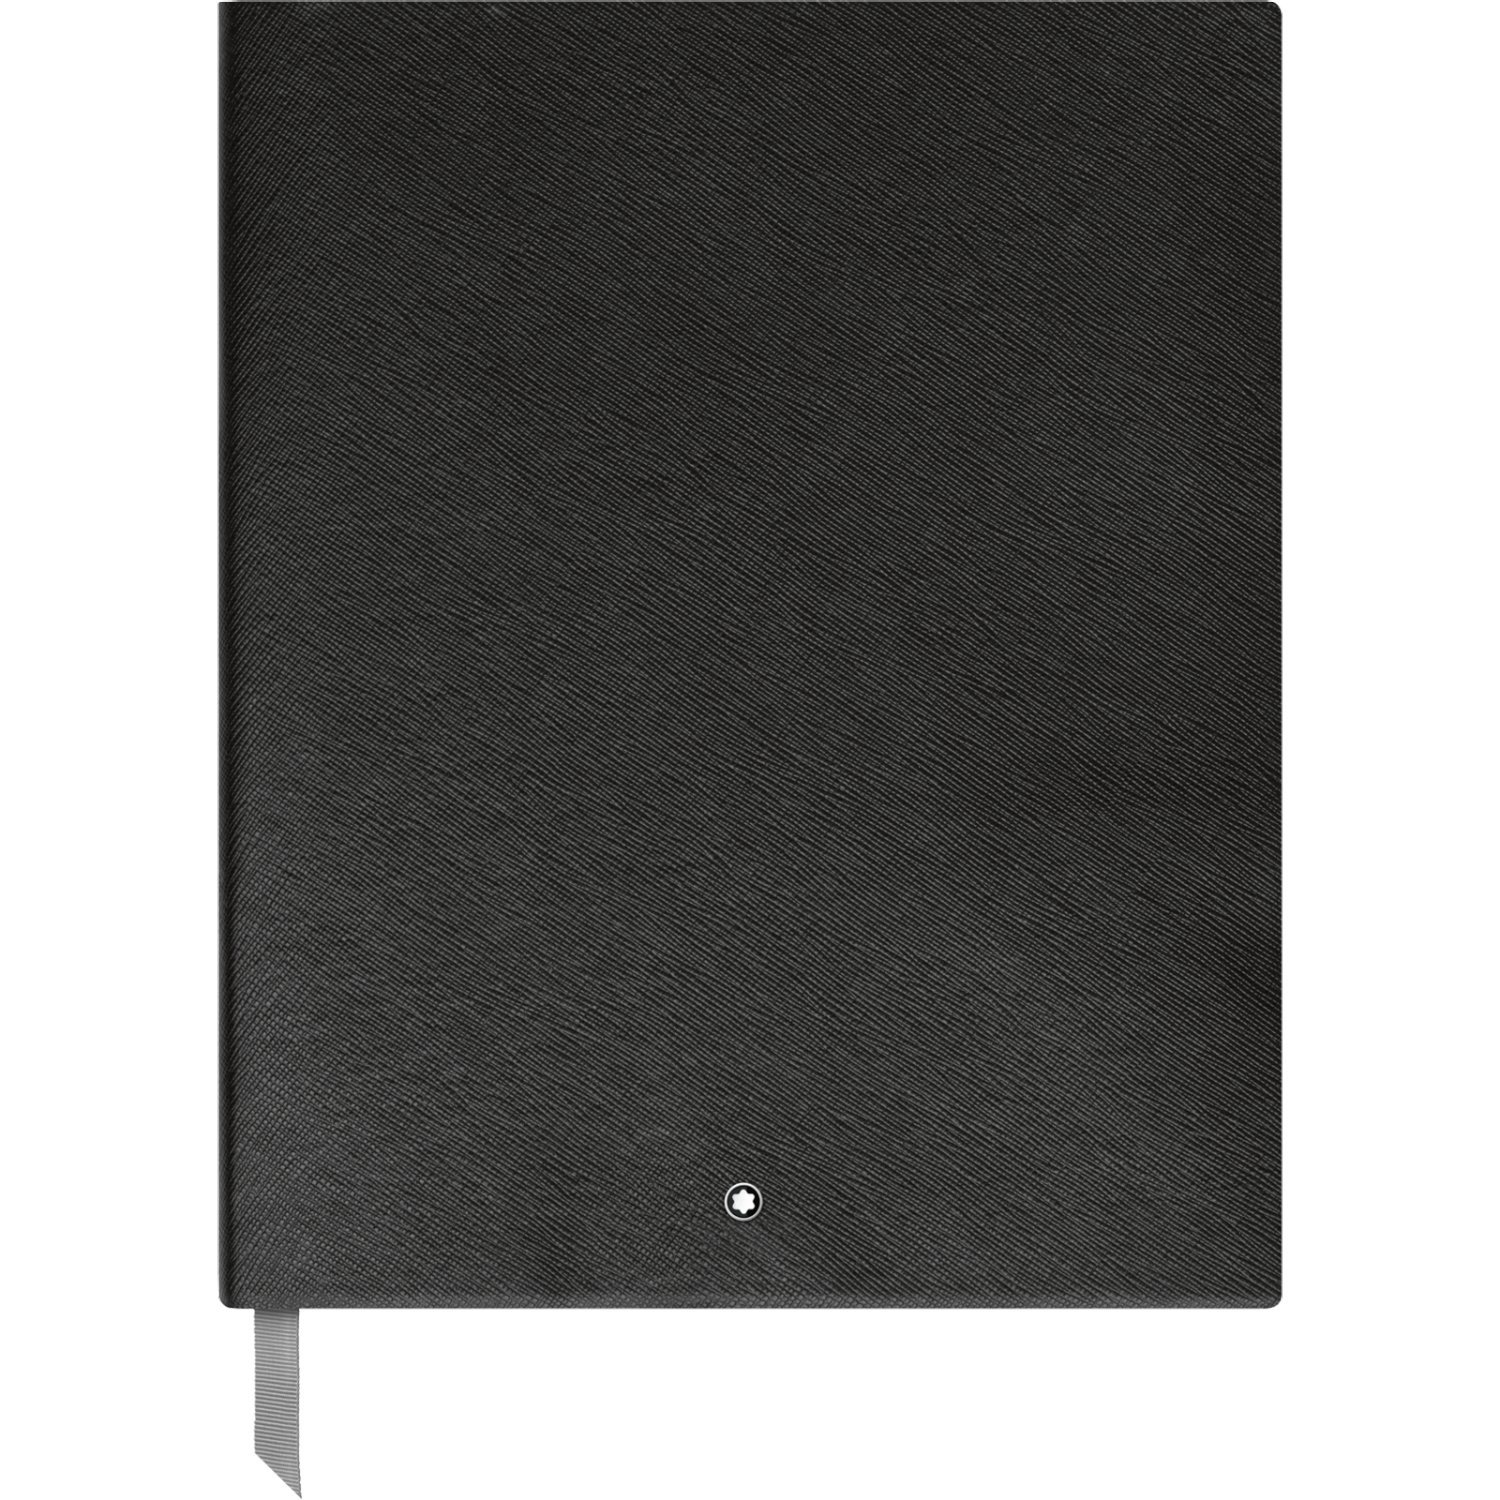 Montblanc Sketch Book Black Blank #149 Fine Stationery 116928 / Elegant Sketching Book with Leather Binding and Unlined Pages / 1 x (8.2 x 10.2 in.) by MONTBLANC